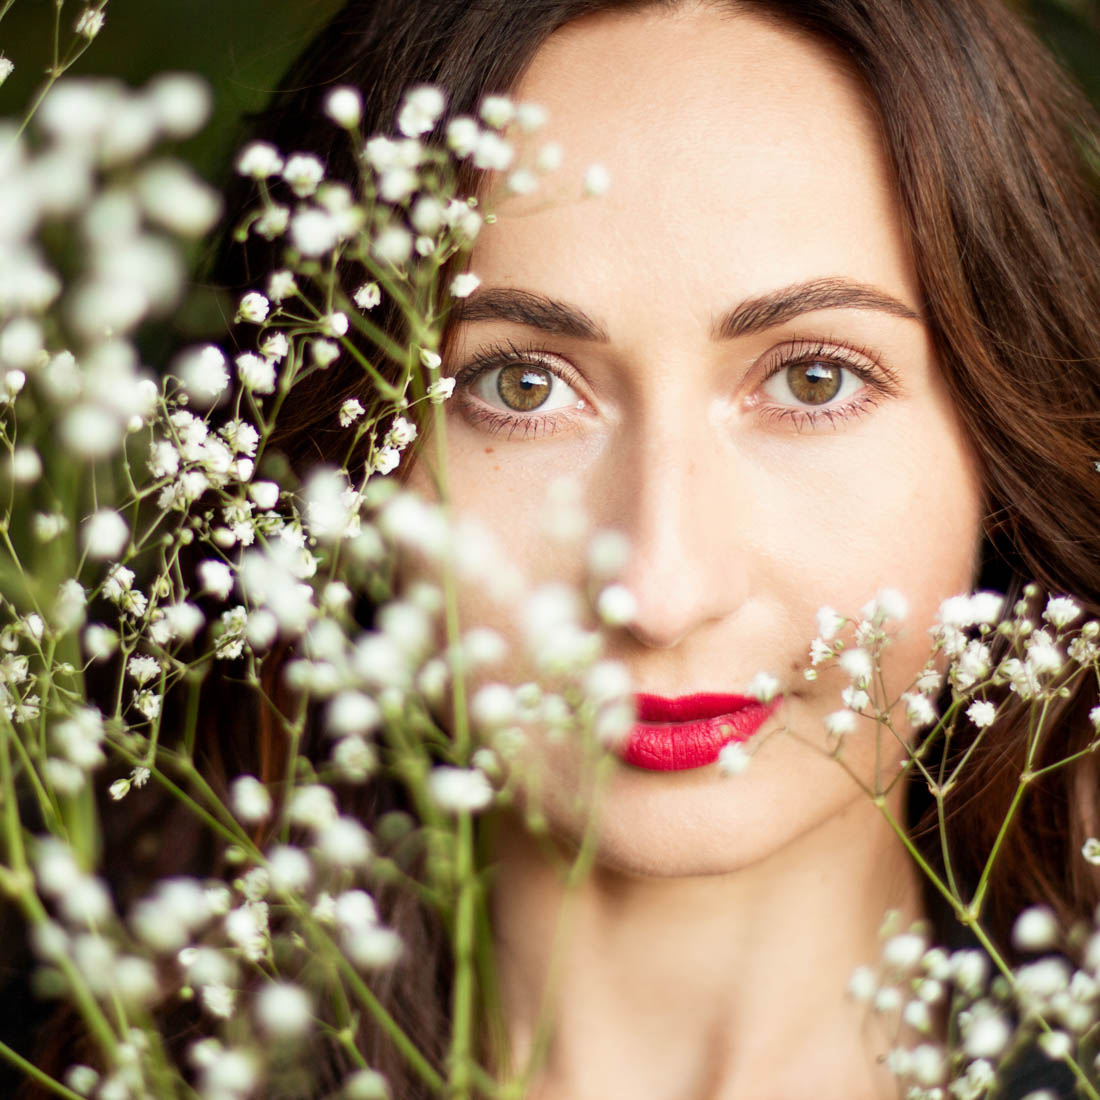 A close-up portrait of a woman with white flowers. Portrait photographer Birmingham UK, personal photoshoots in Birmingham and West Midlands, professional photography services in West Midlands UK